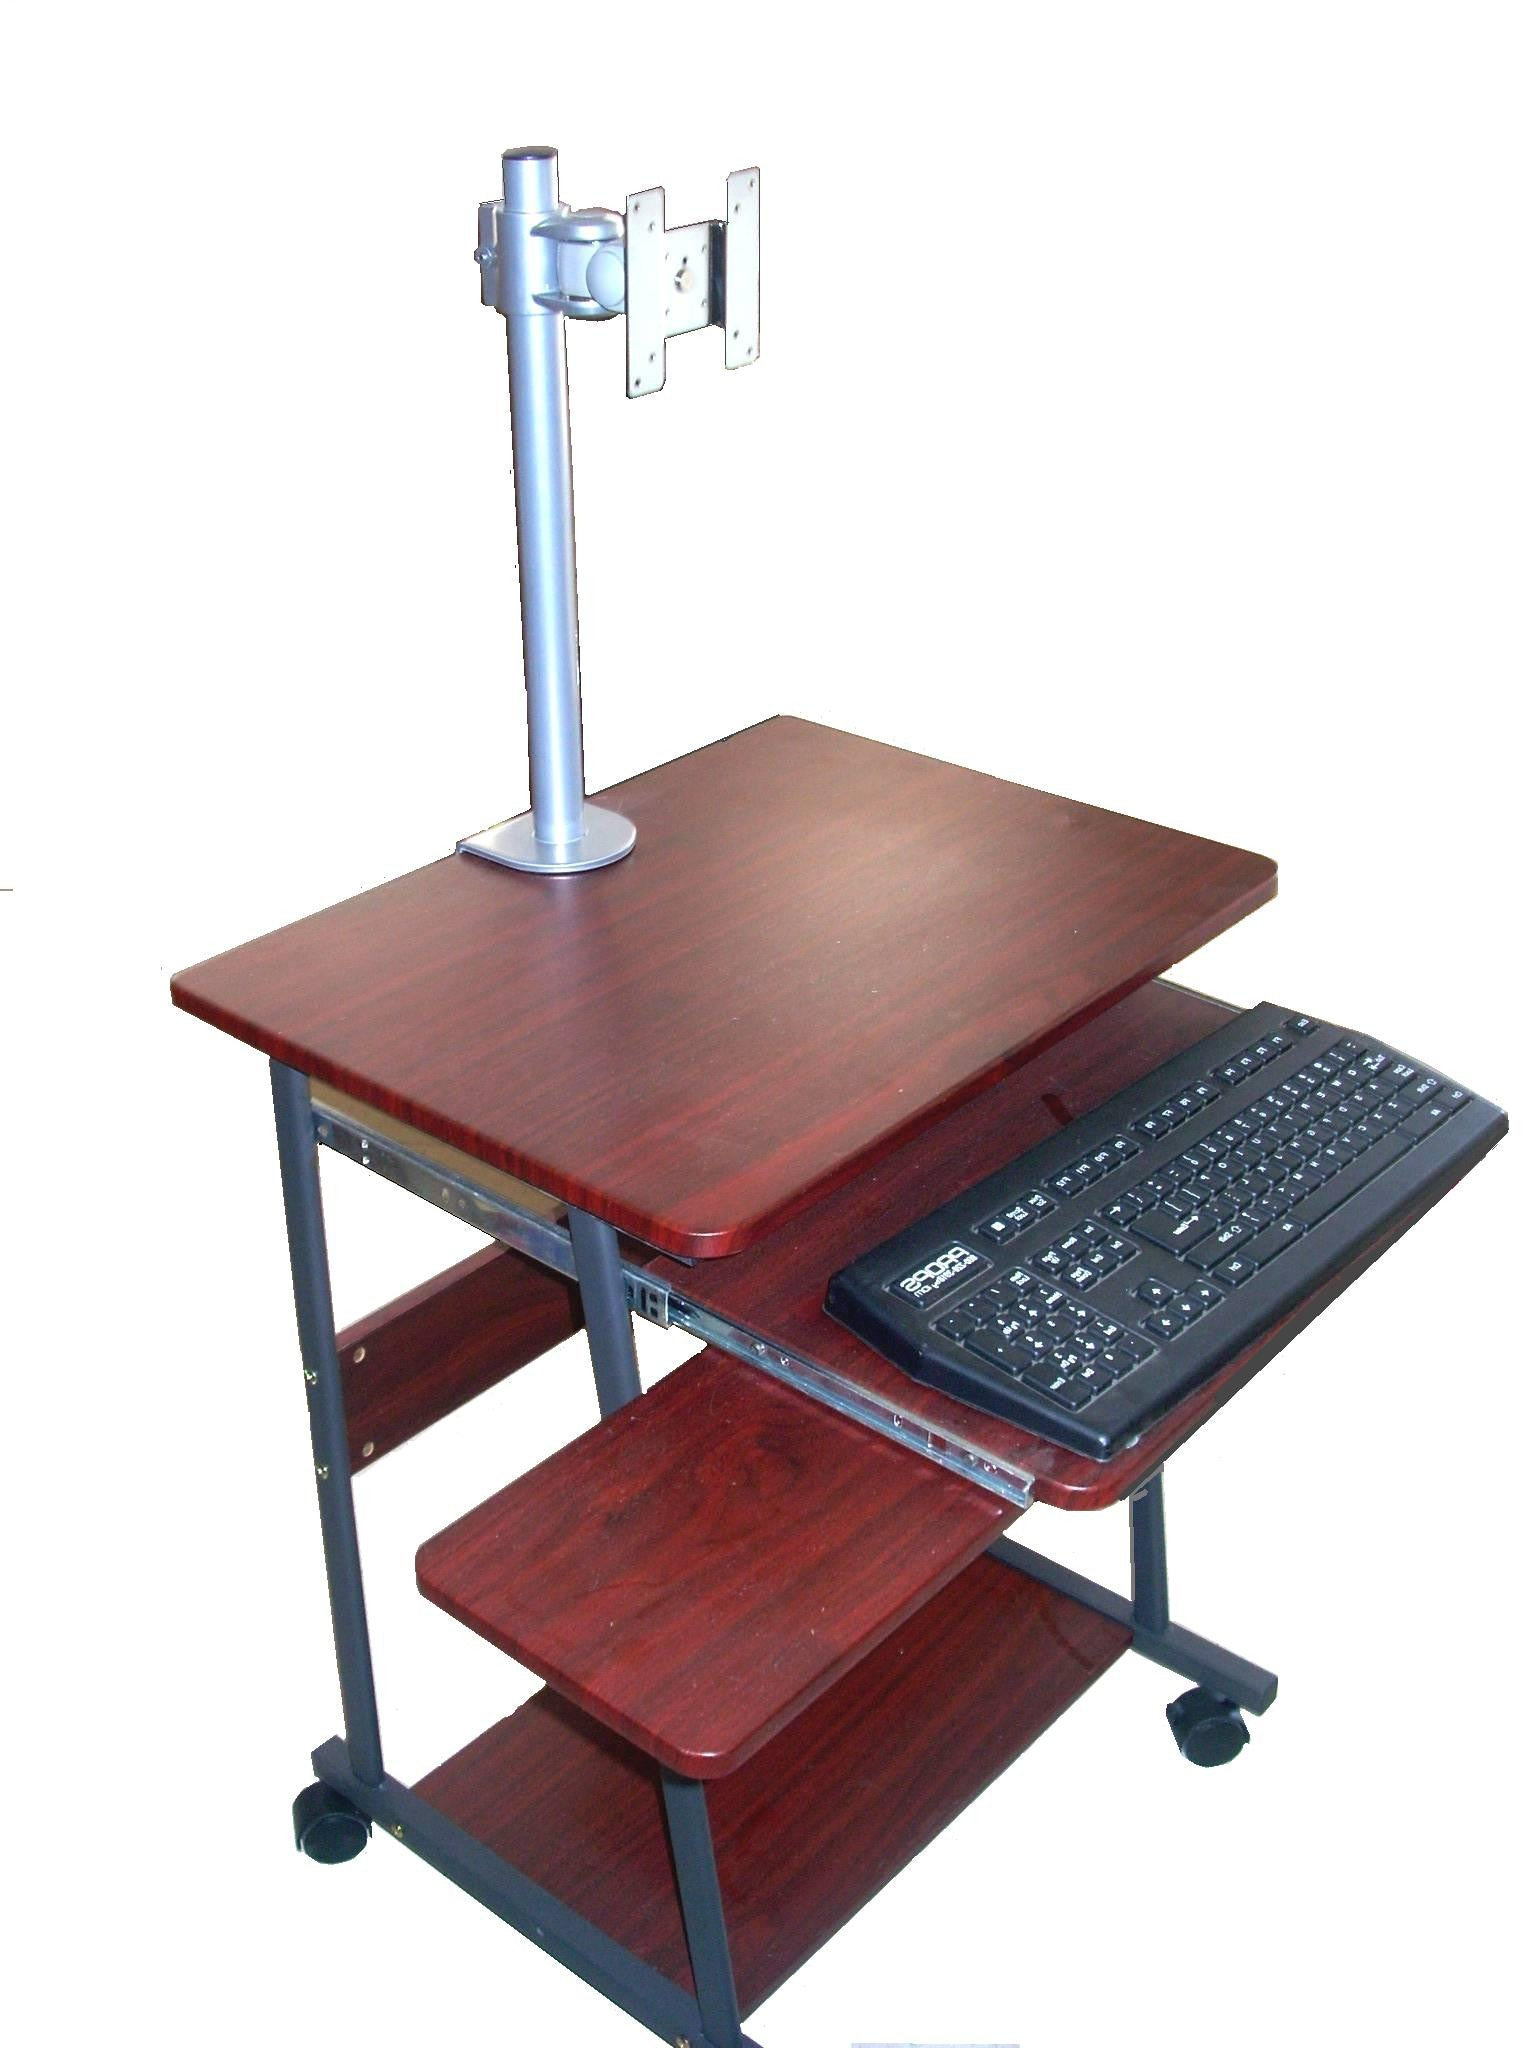 "24"" compact mobile computer desk with keyboard tray & mouse tray shown with lcd monitor desk stand clamp on"